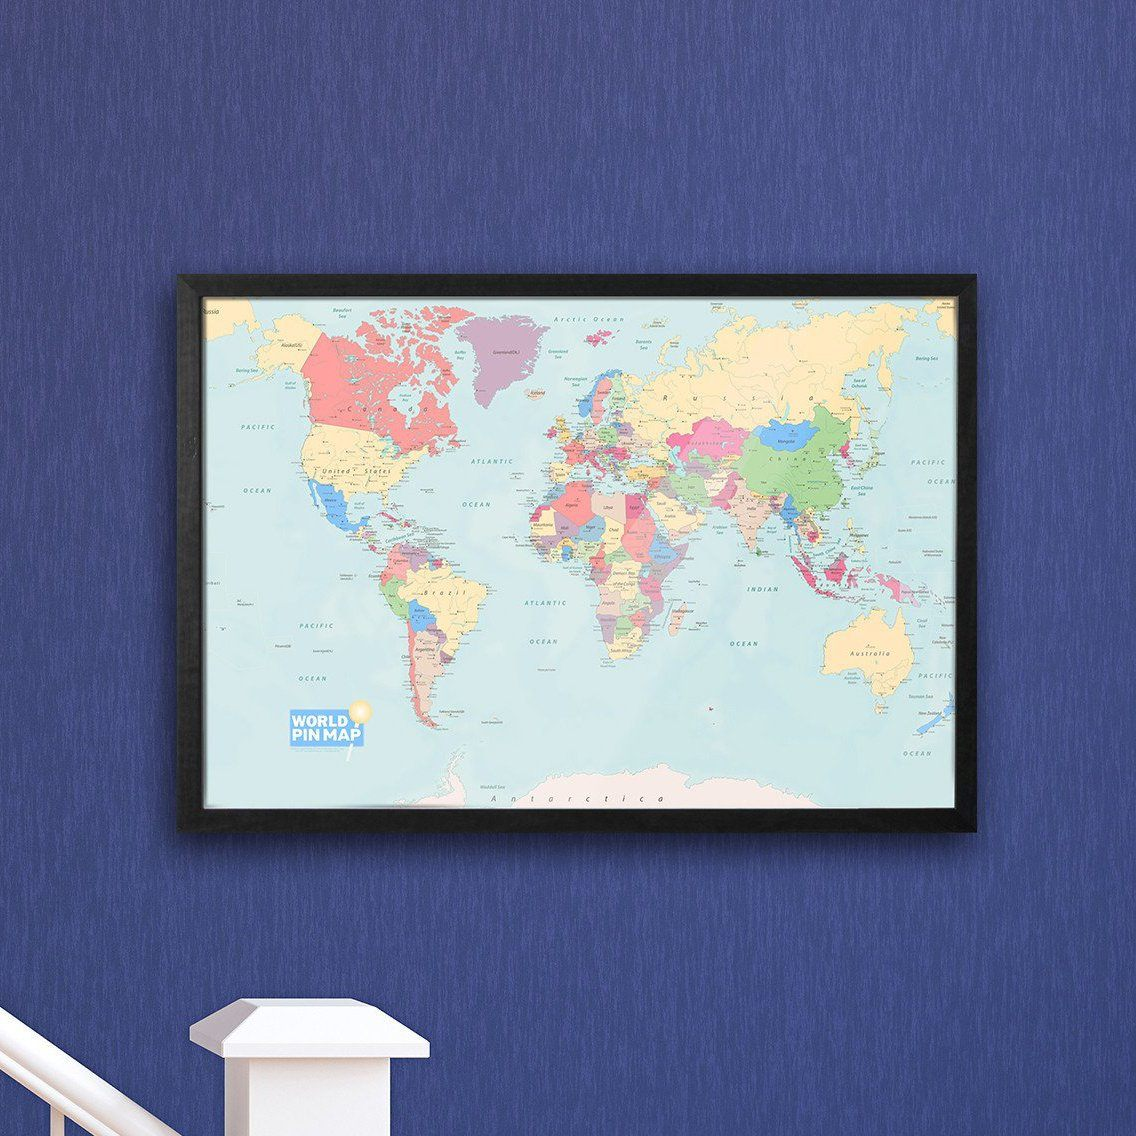 World map pinboard framed map of the world to plan and record world map pinboard framed map of the world to plan and record travel map marketing gumiabroncs Gallery